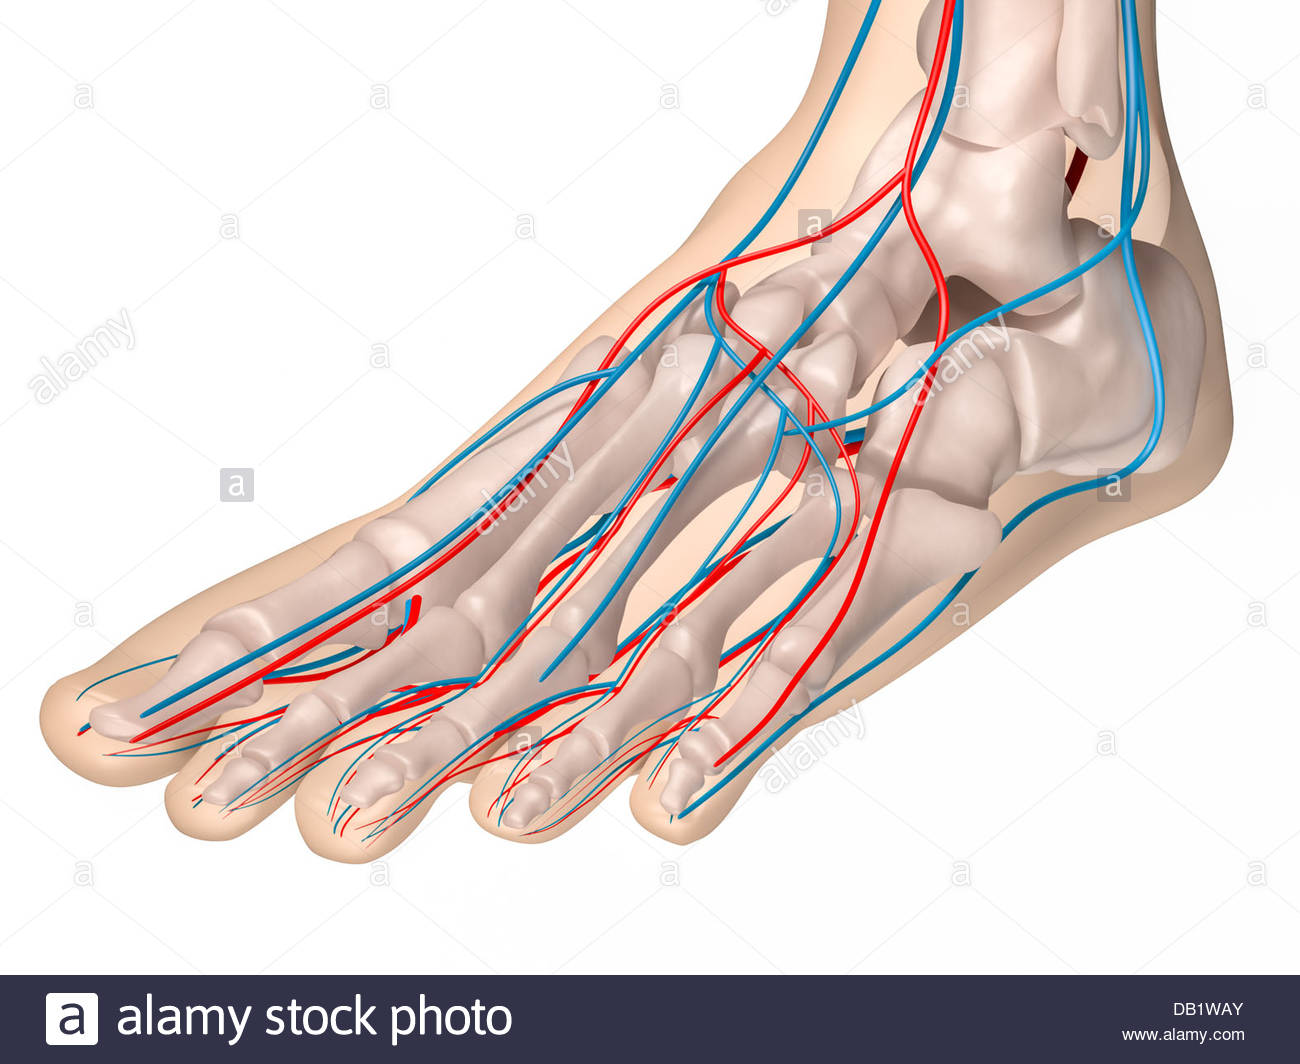 Digital medical illustration depicting the front view of the foot ...